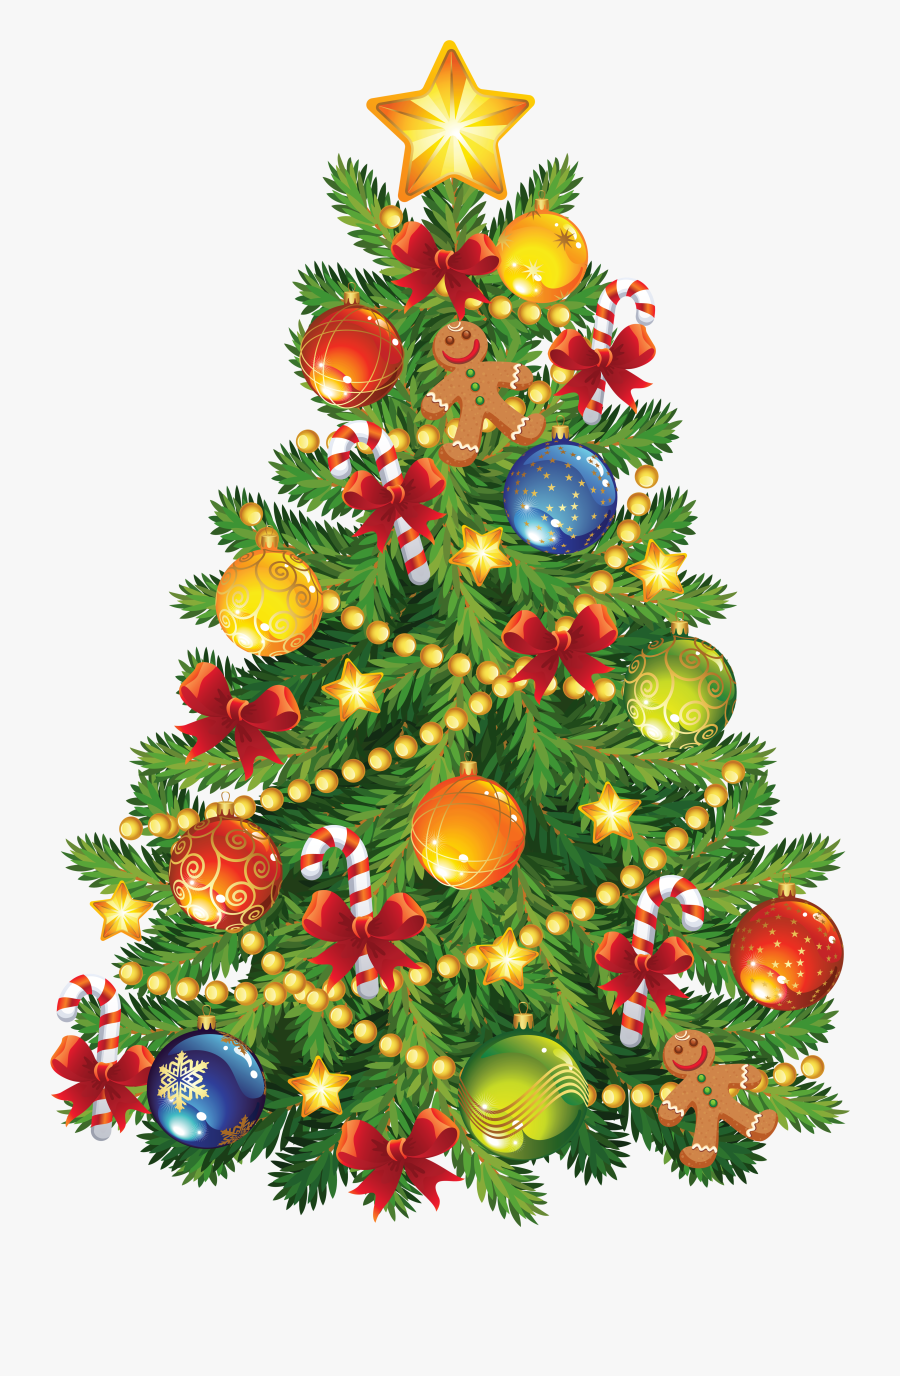 Christmas Clipart Transparent Background.Christmas Trees Clipart Merry Christmas Tree Free